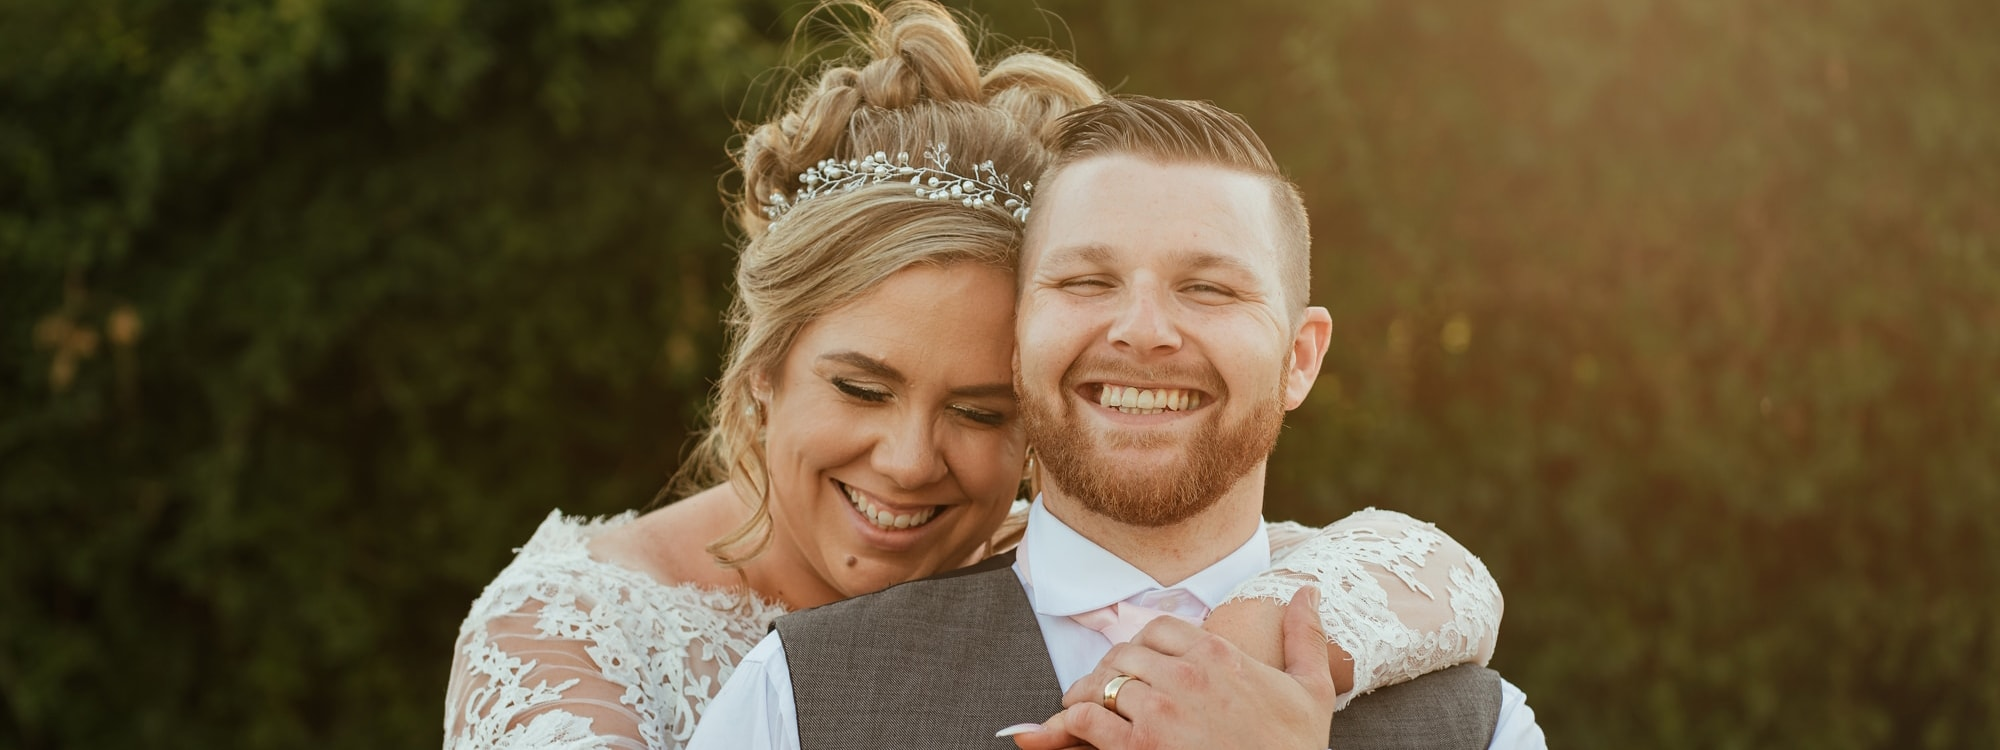 Couple Embrace and laugh together in Natural Wedding Photography Moment